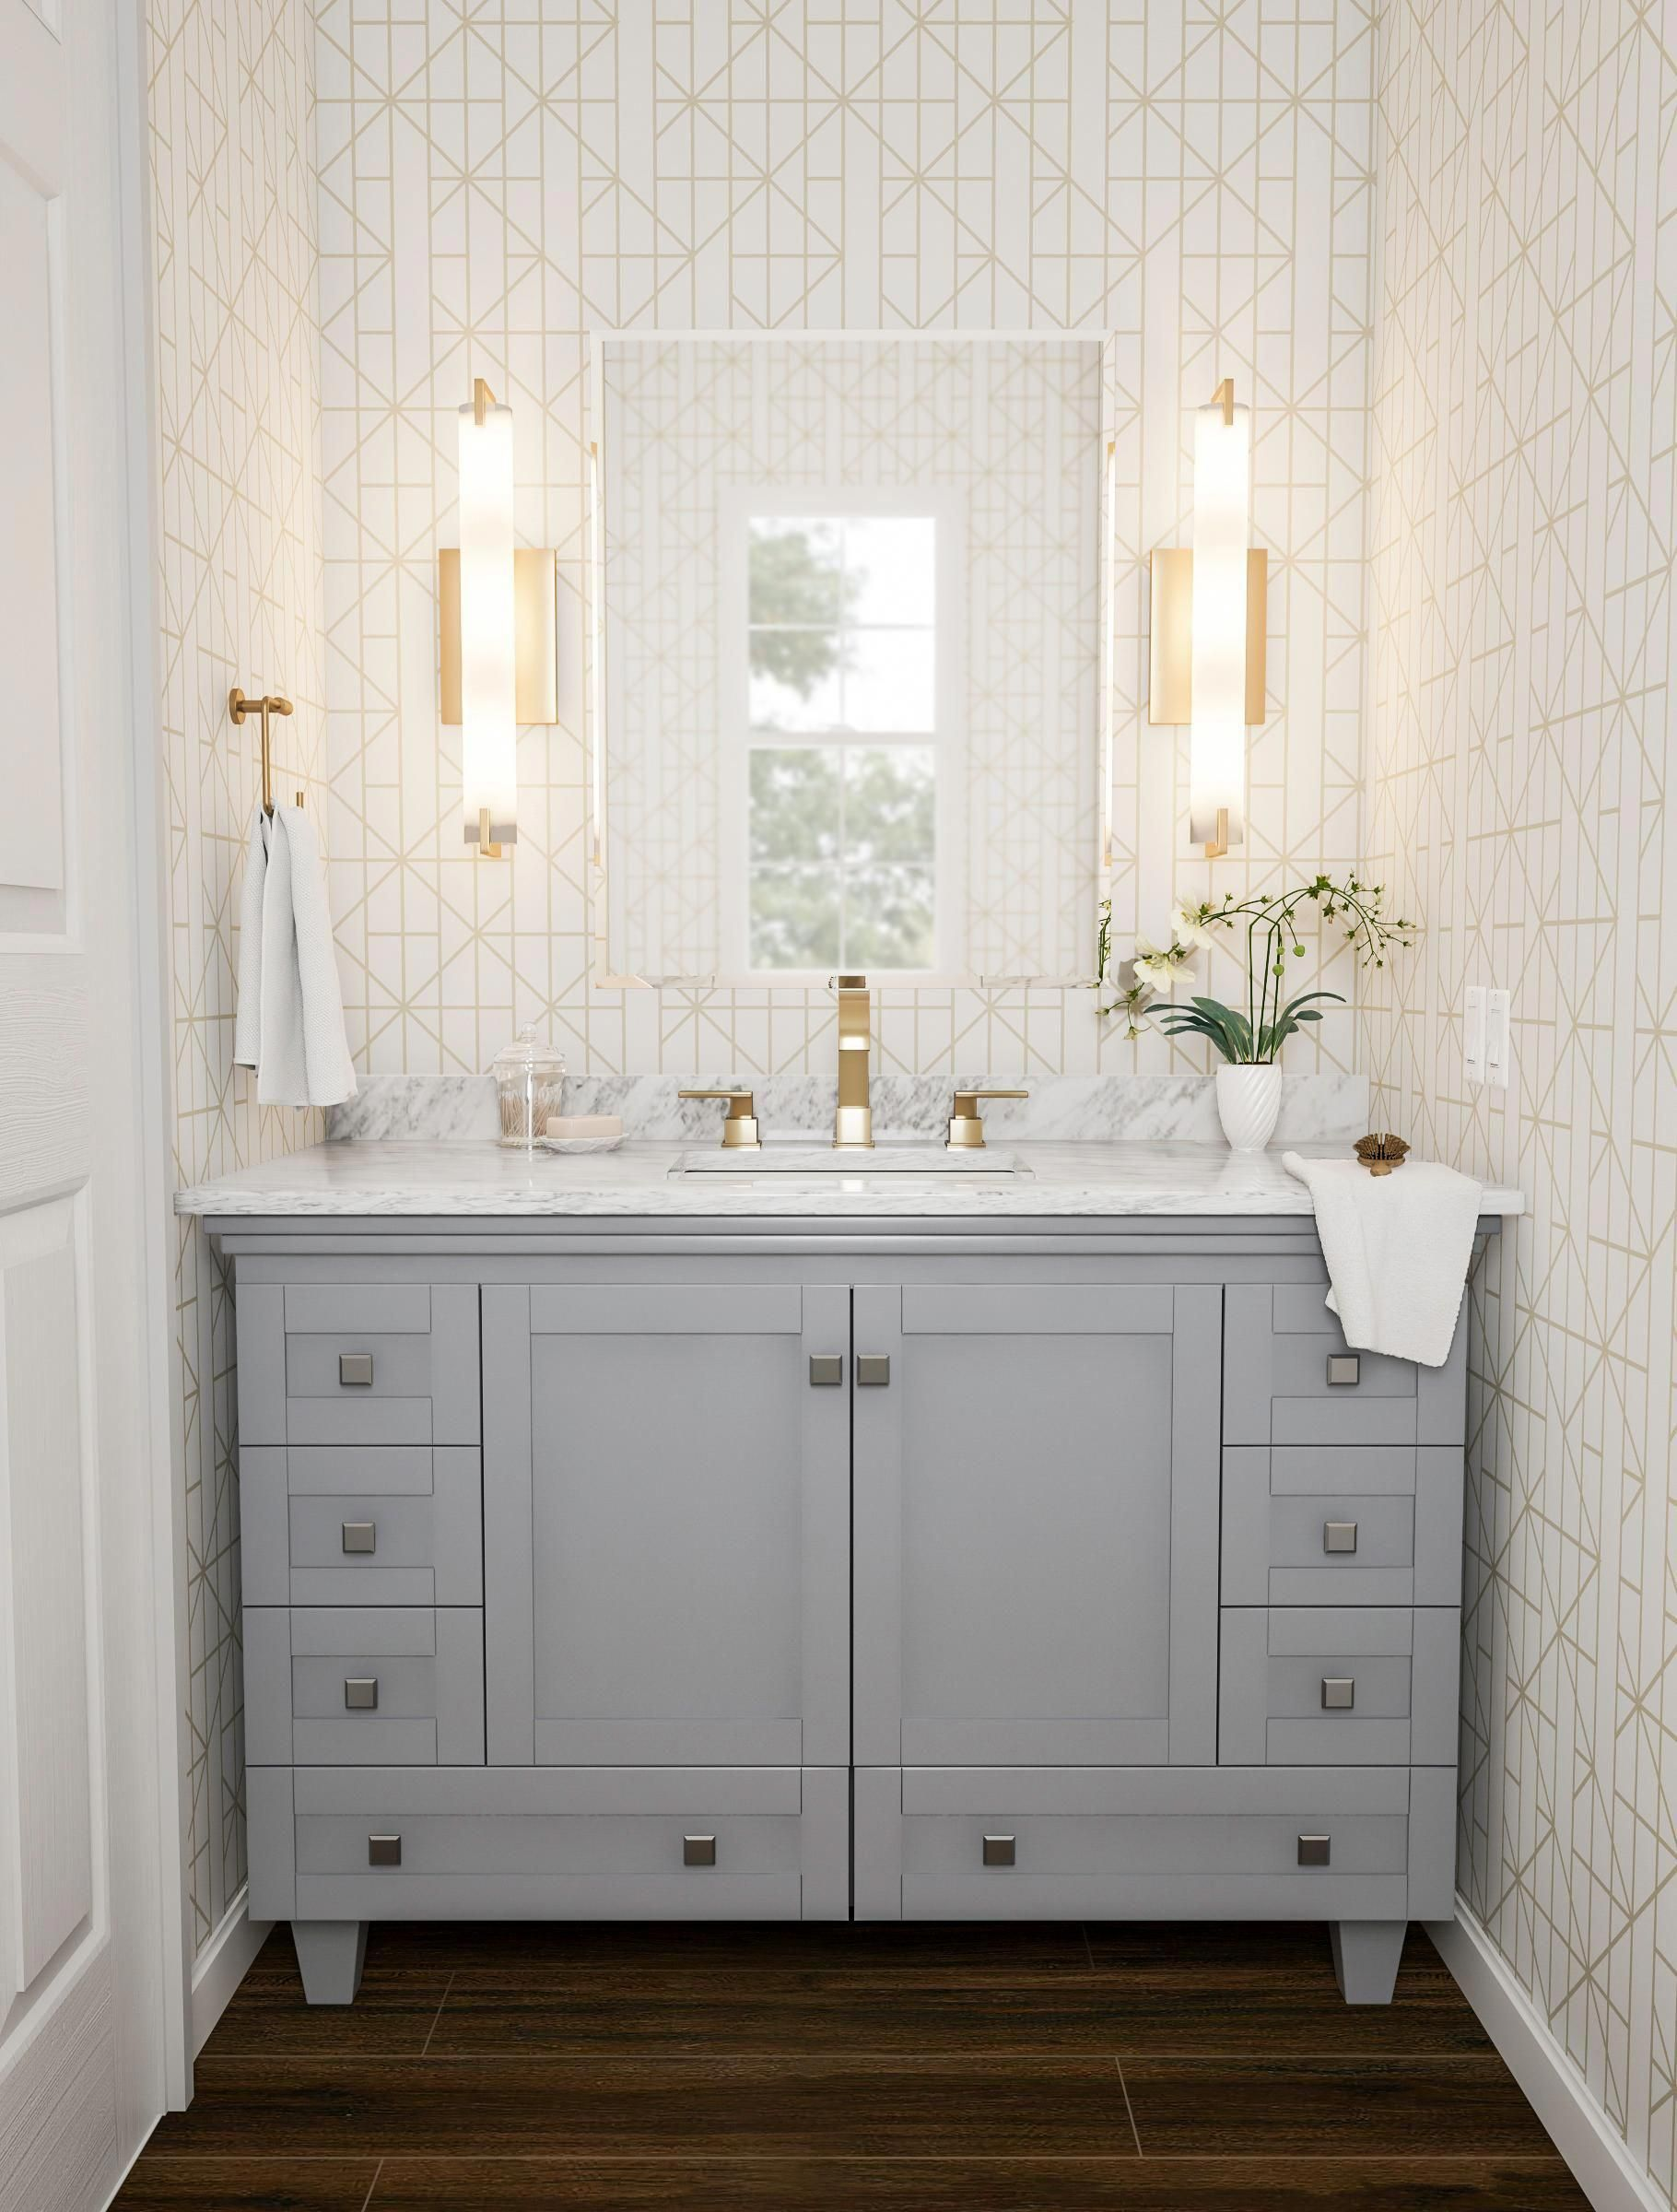 Nominate Geometry For Your Next Bathroom At First Glance This Vanity Nook Seems Simple It S Gra Bathroom Vanity Designs Double Vanity Bathroom Vanity Design